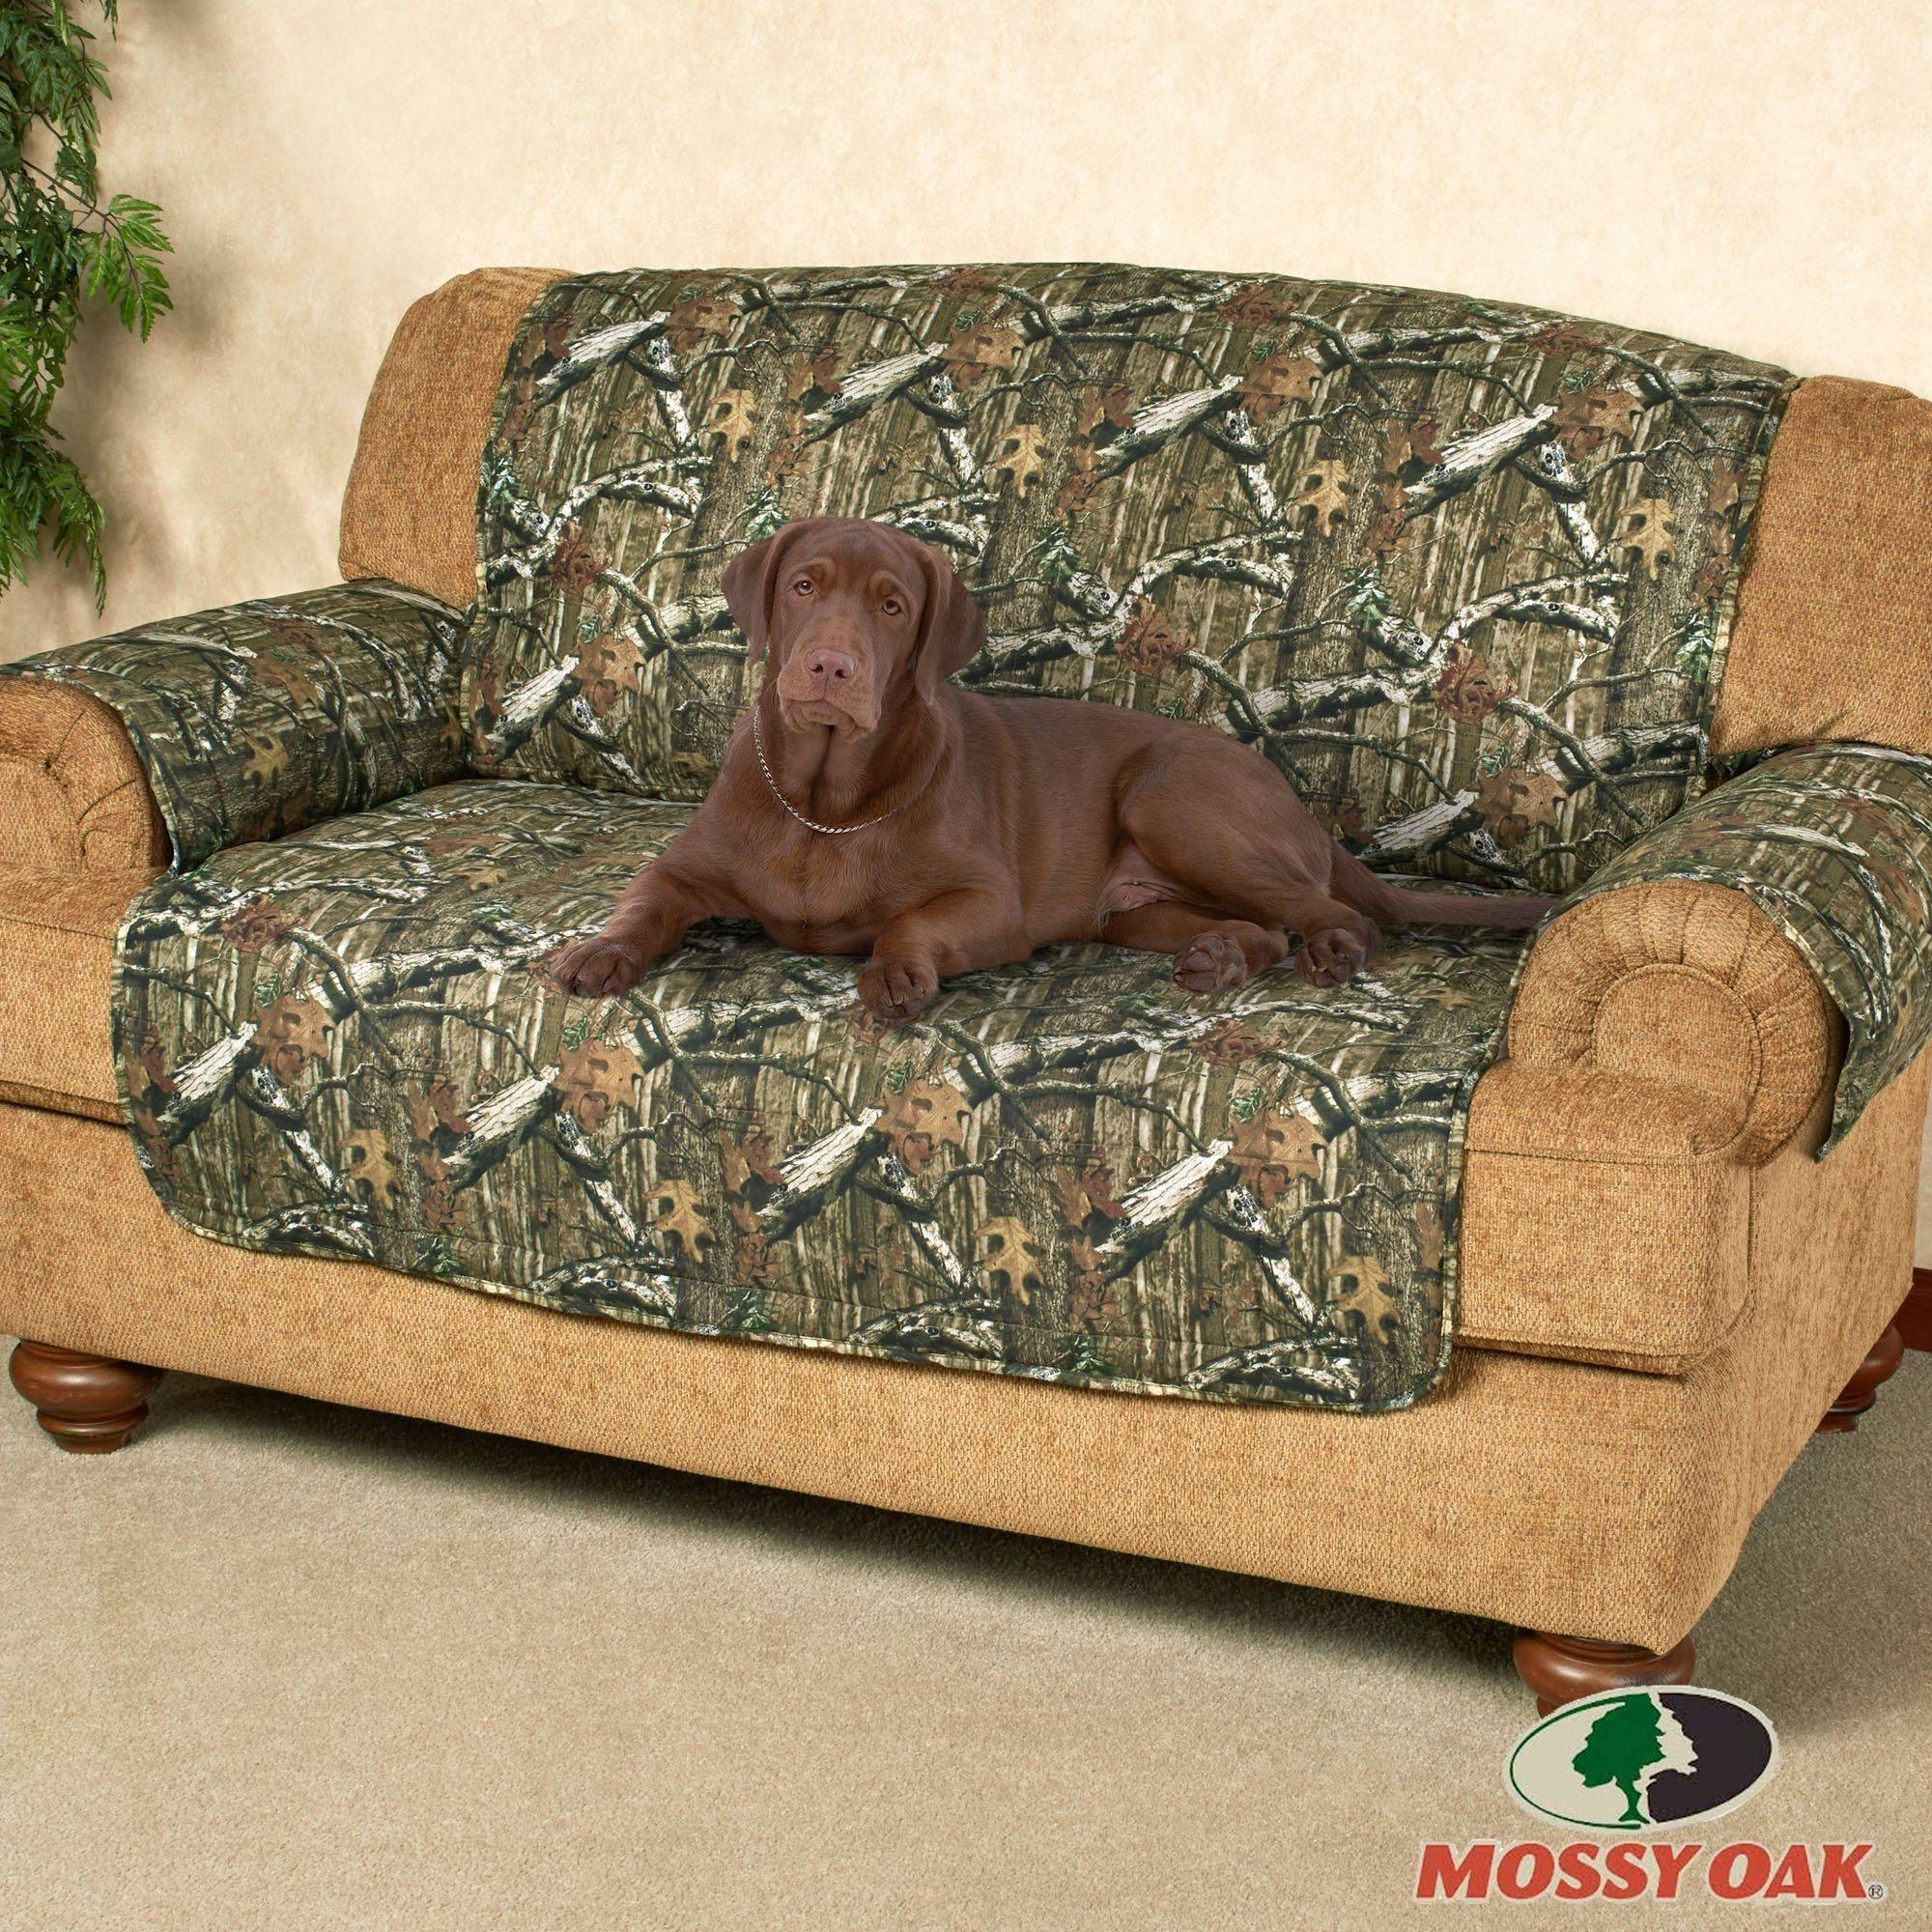 Mossy Oak Break Up Infinity Camo Furniture Protectors pertaining to Sofa and Loveseat Covers (Image 10 of 15)